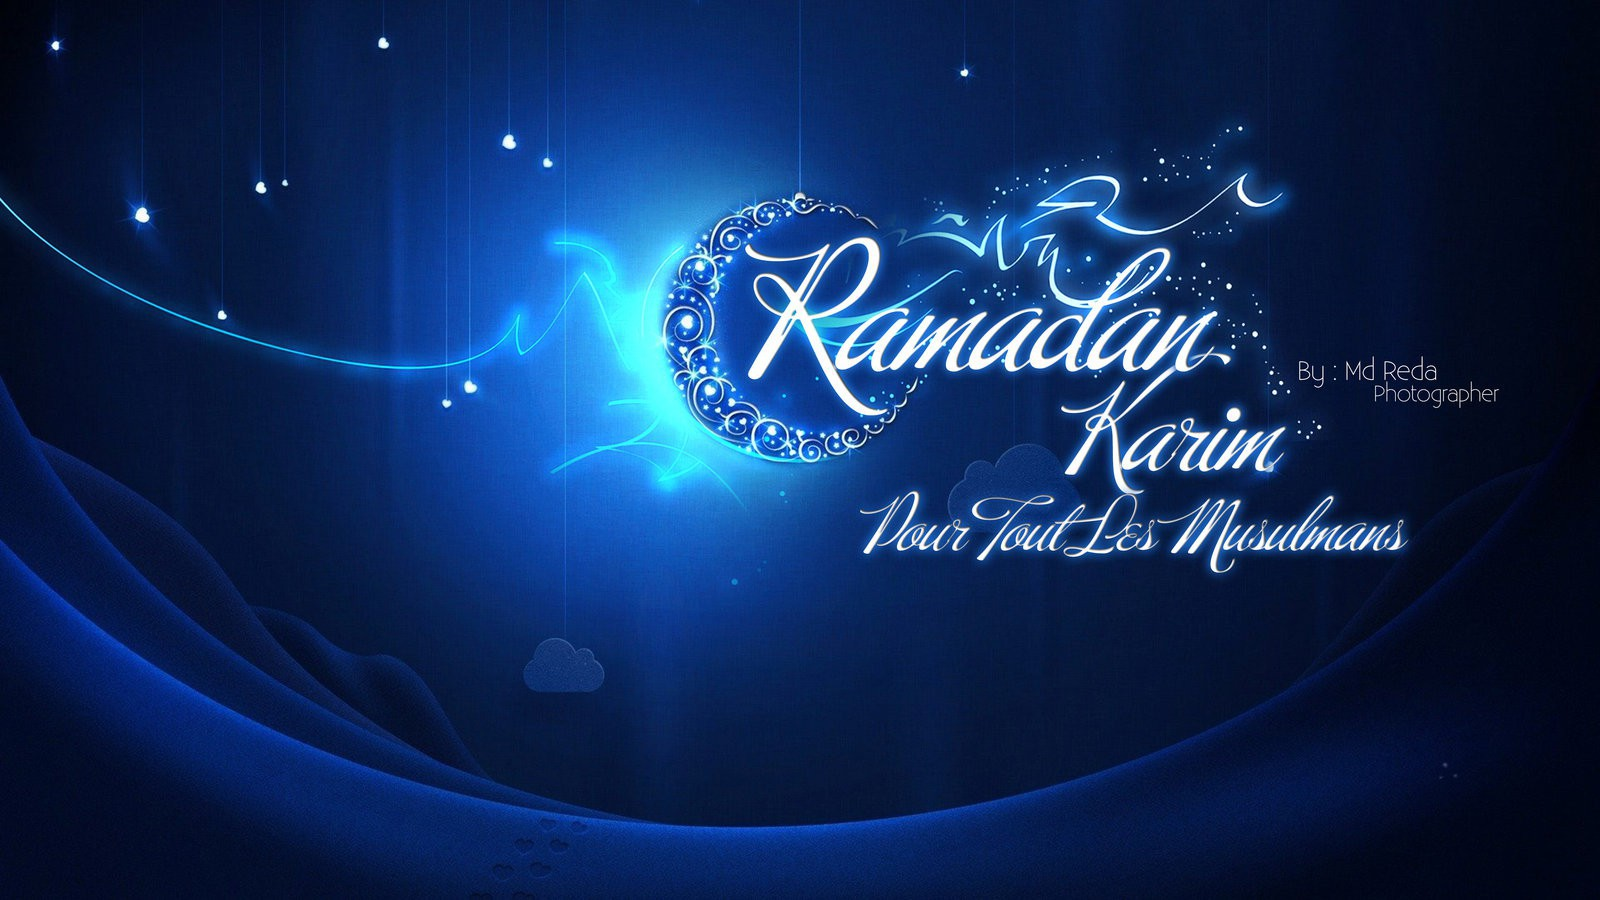 Free Download Ramadan Kareem 2014 Wishes Hd Wallpapers New